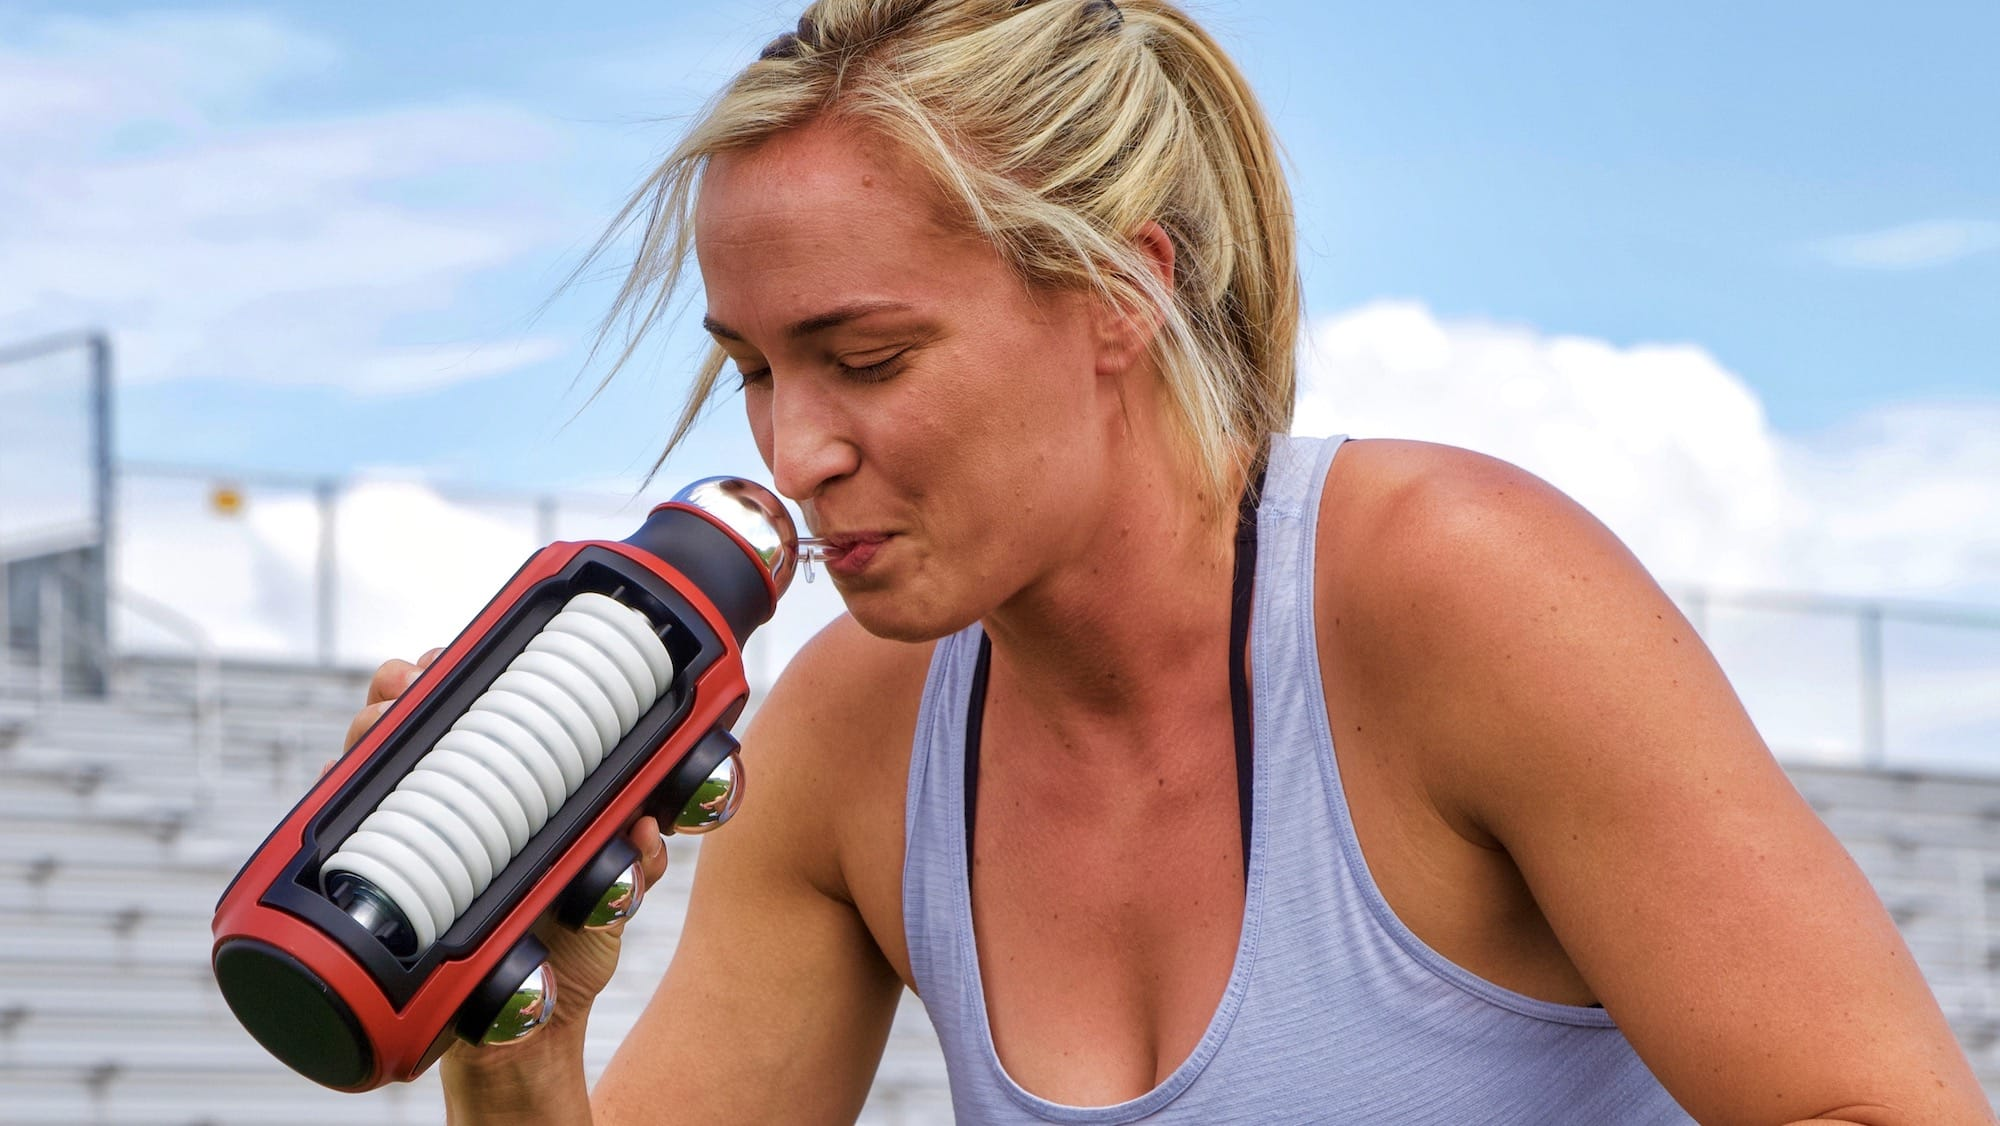 Mobility Mate self-massage water bottle is great for those who live on the go